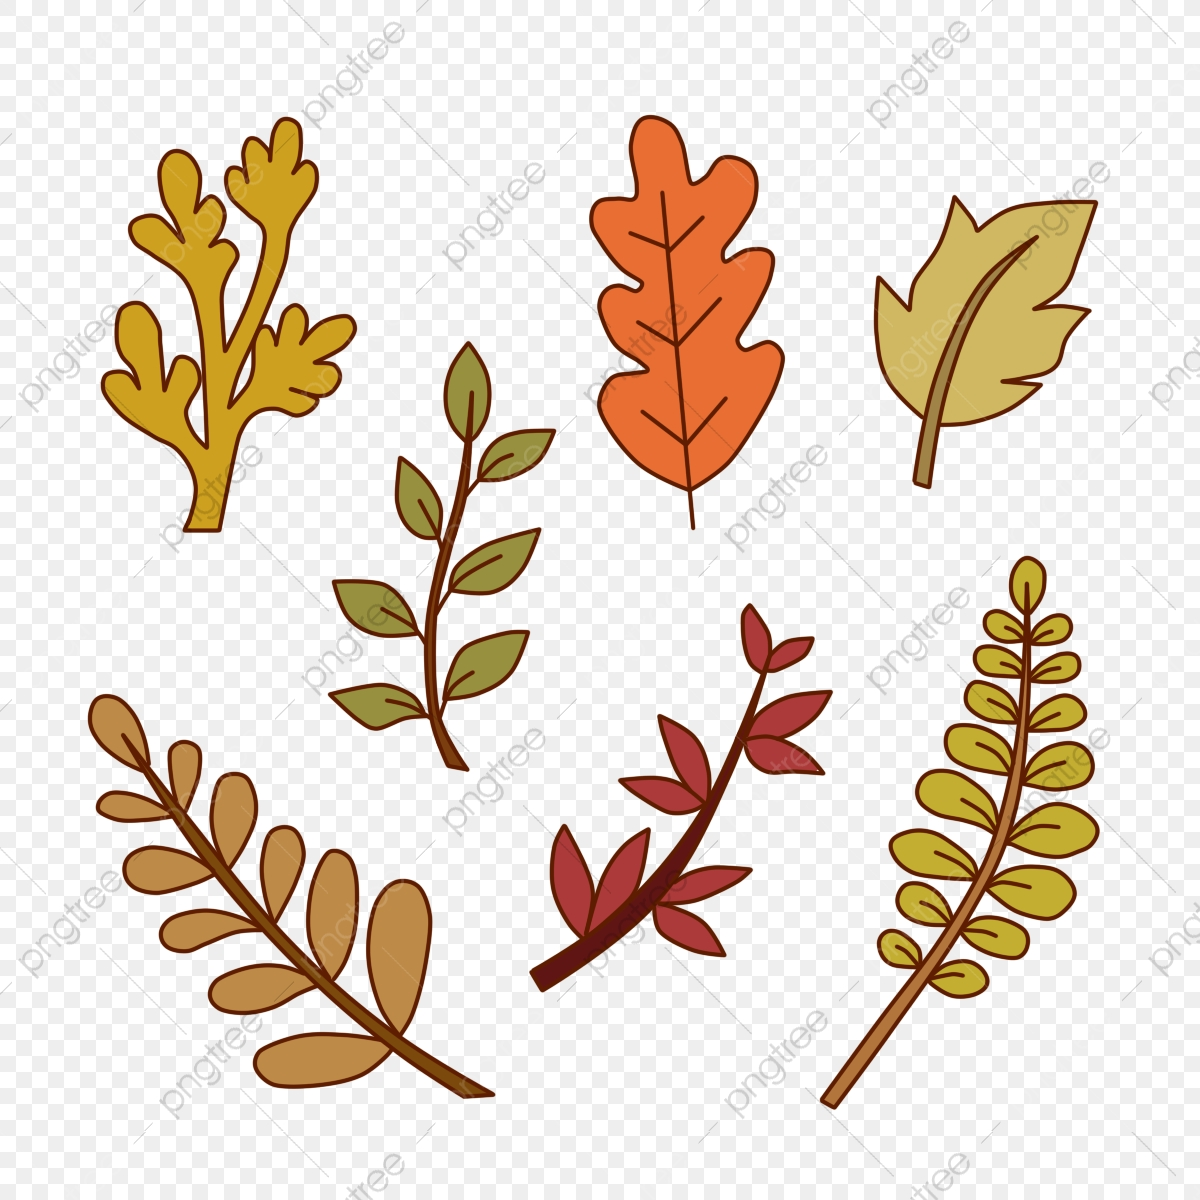 Autumn Leaves Icon Set In Hand Drawn Style Autumn Season Fall Png Transparent Clipart Image And Psd File For Free Download